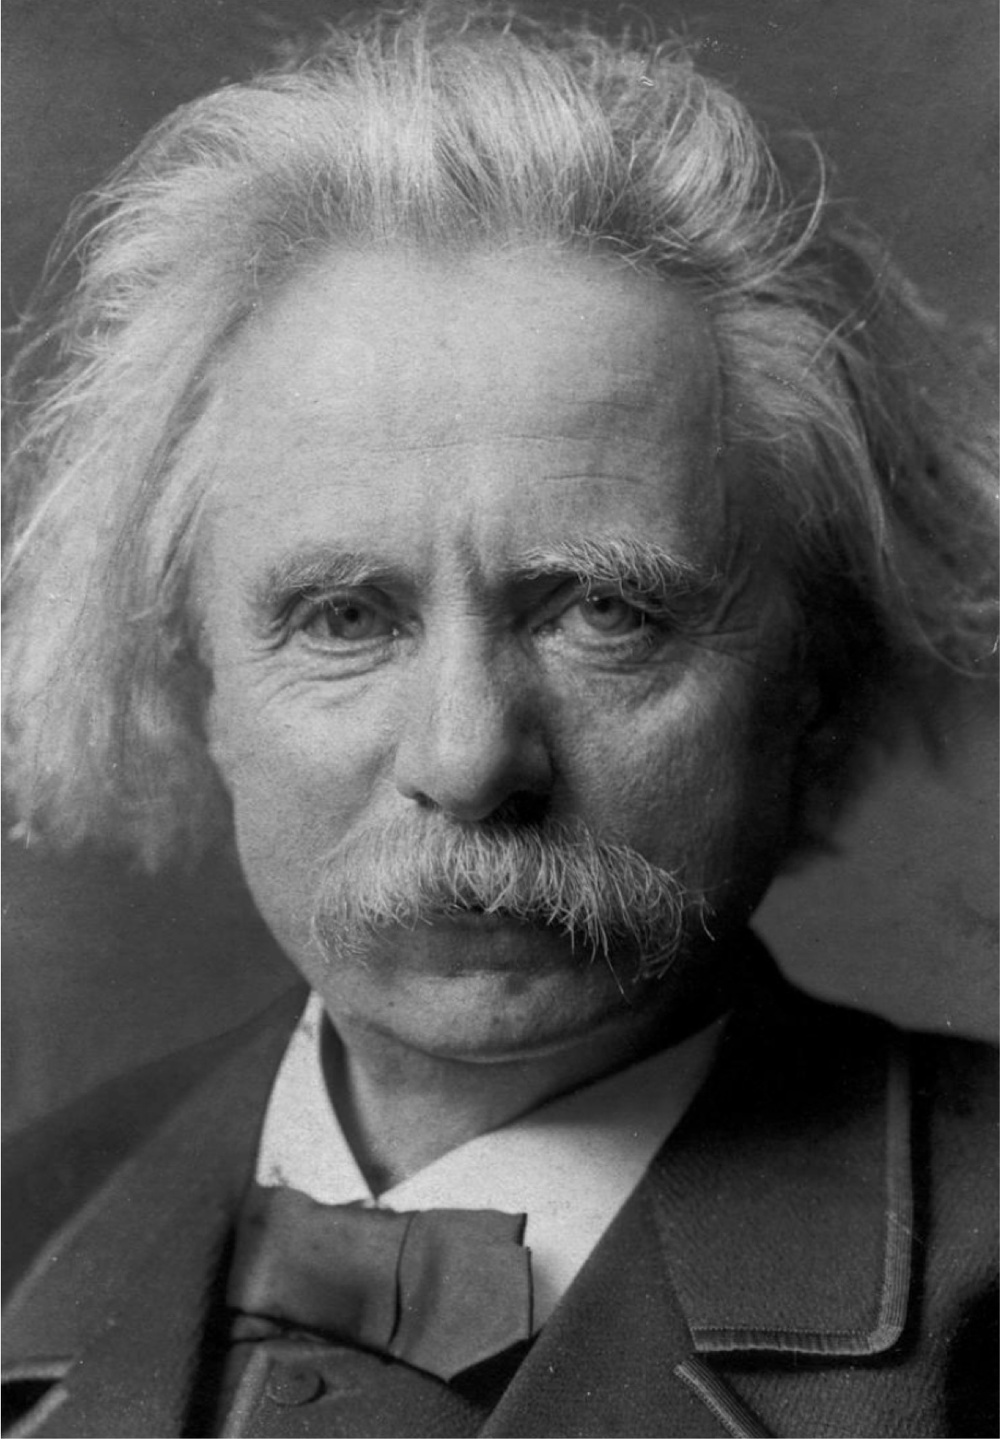 Edward Grieg (1843-1907), the Norwegian composer who's nationalistic music made him a popular hero of his home country.  Though best known for his immensely popular work,  In the Hall of the Mountain King , he actually did not like the piece.  Note the striking resemblance to Einstein in this photo.